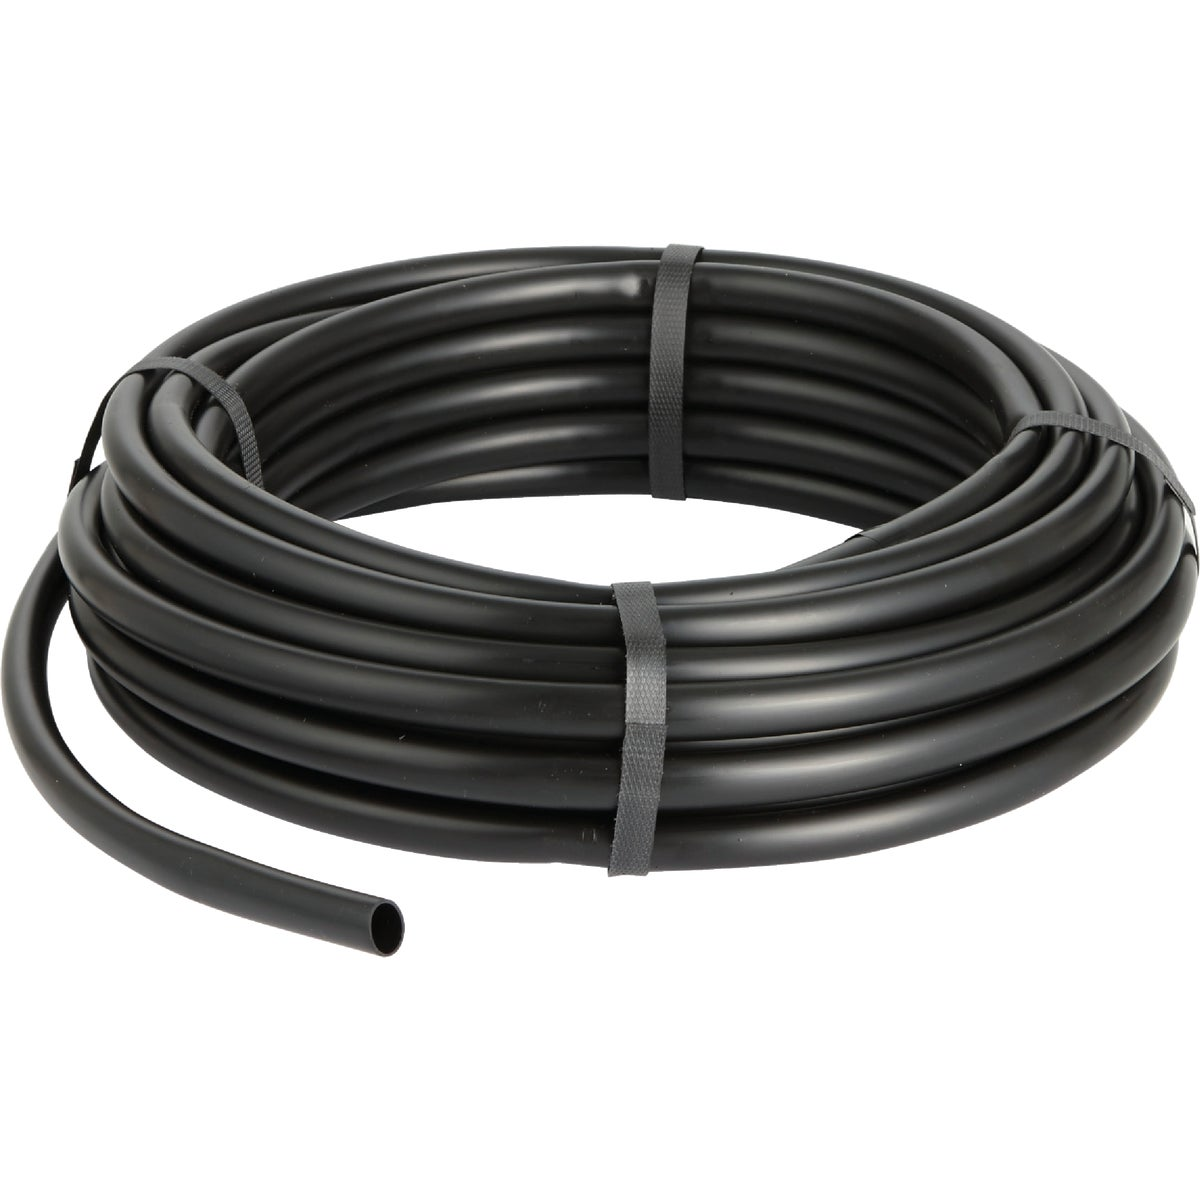 "1/2"" DRIP WATERING HOSE - 052005P by Raindrip Inc"